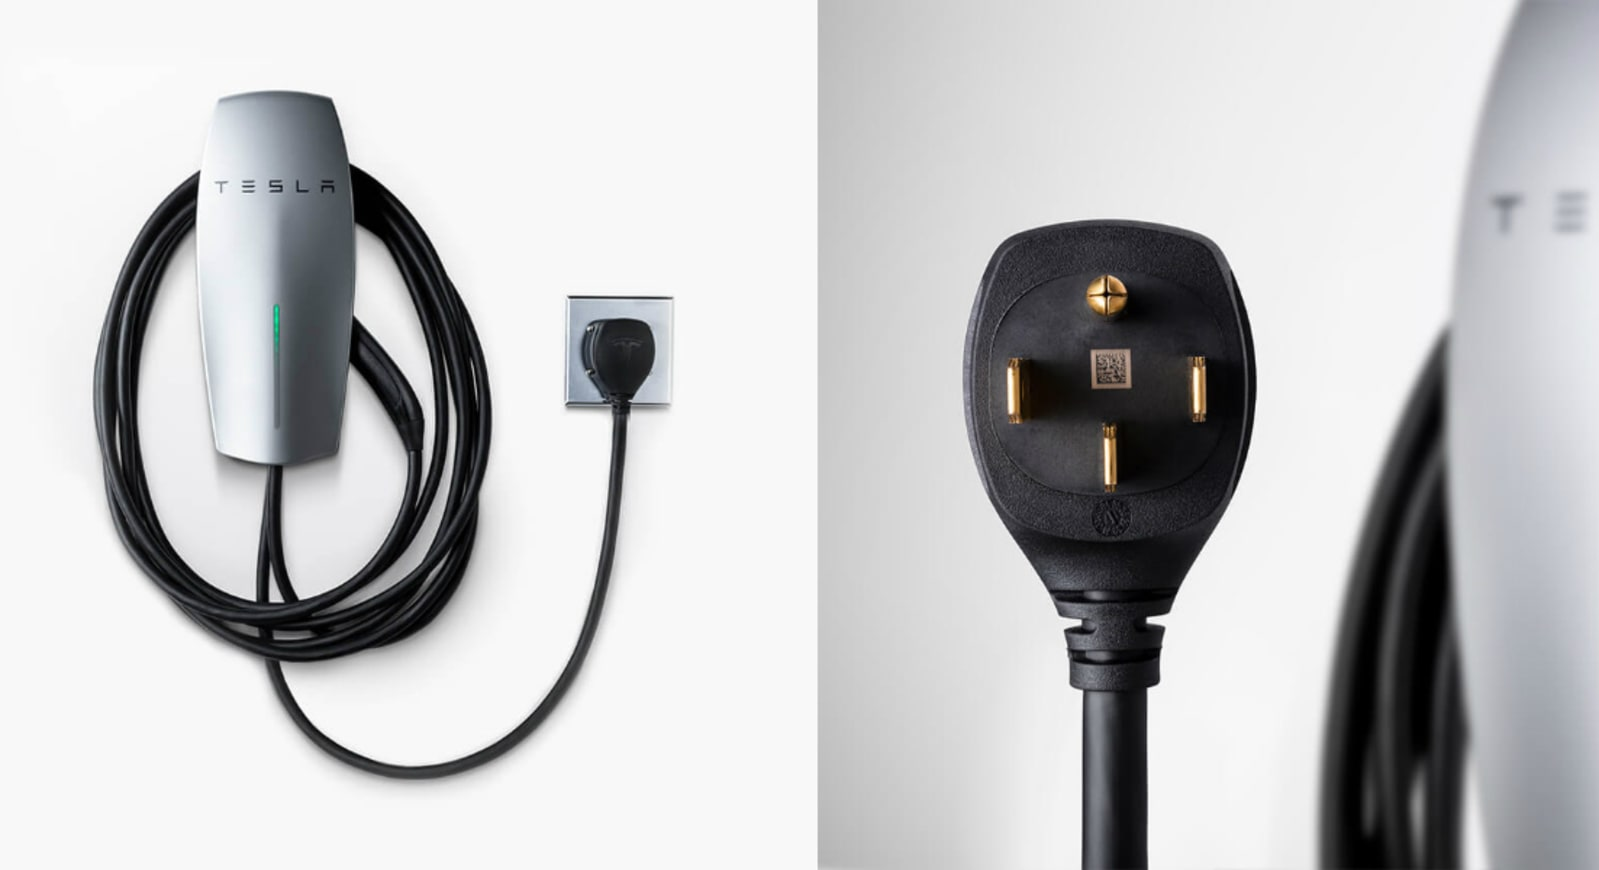 Tesla releases a plug-in EV charger you can take with you